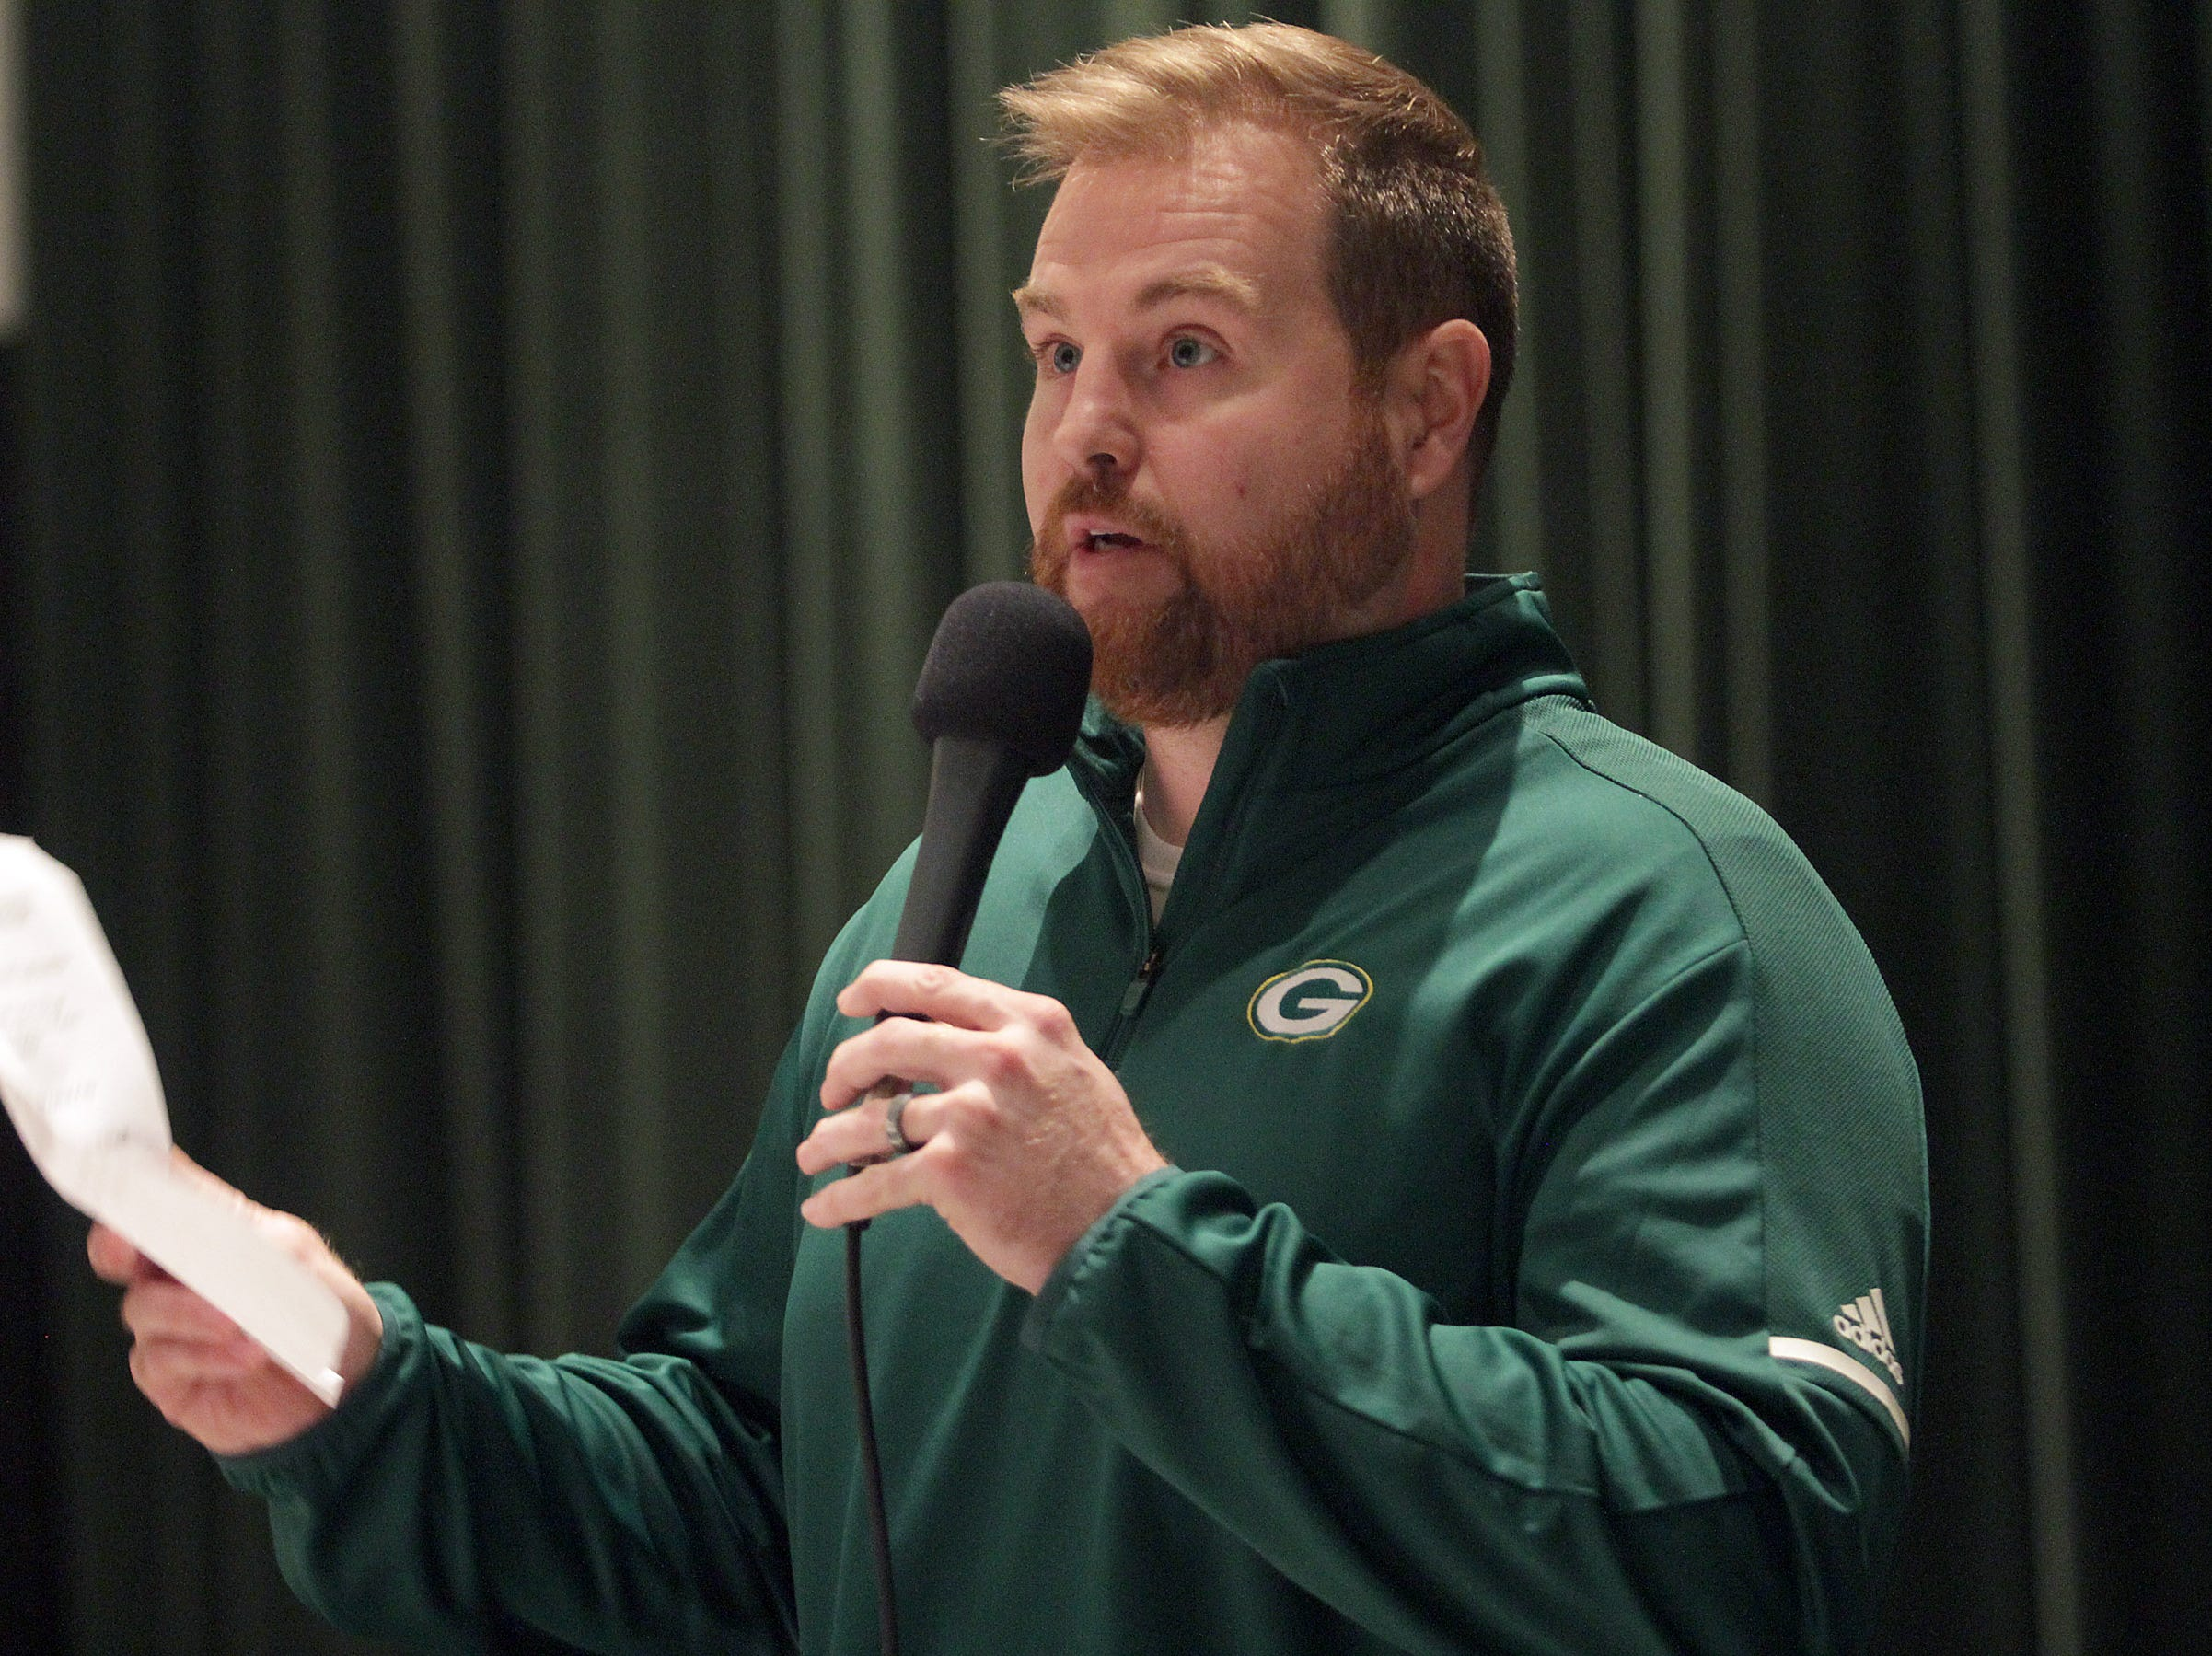 Gallatin High School's new football coach Chad Watson tells the crowd at Gallatin High school what they can expect from a team coached by him on Tuesday, January 8, 2019.